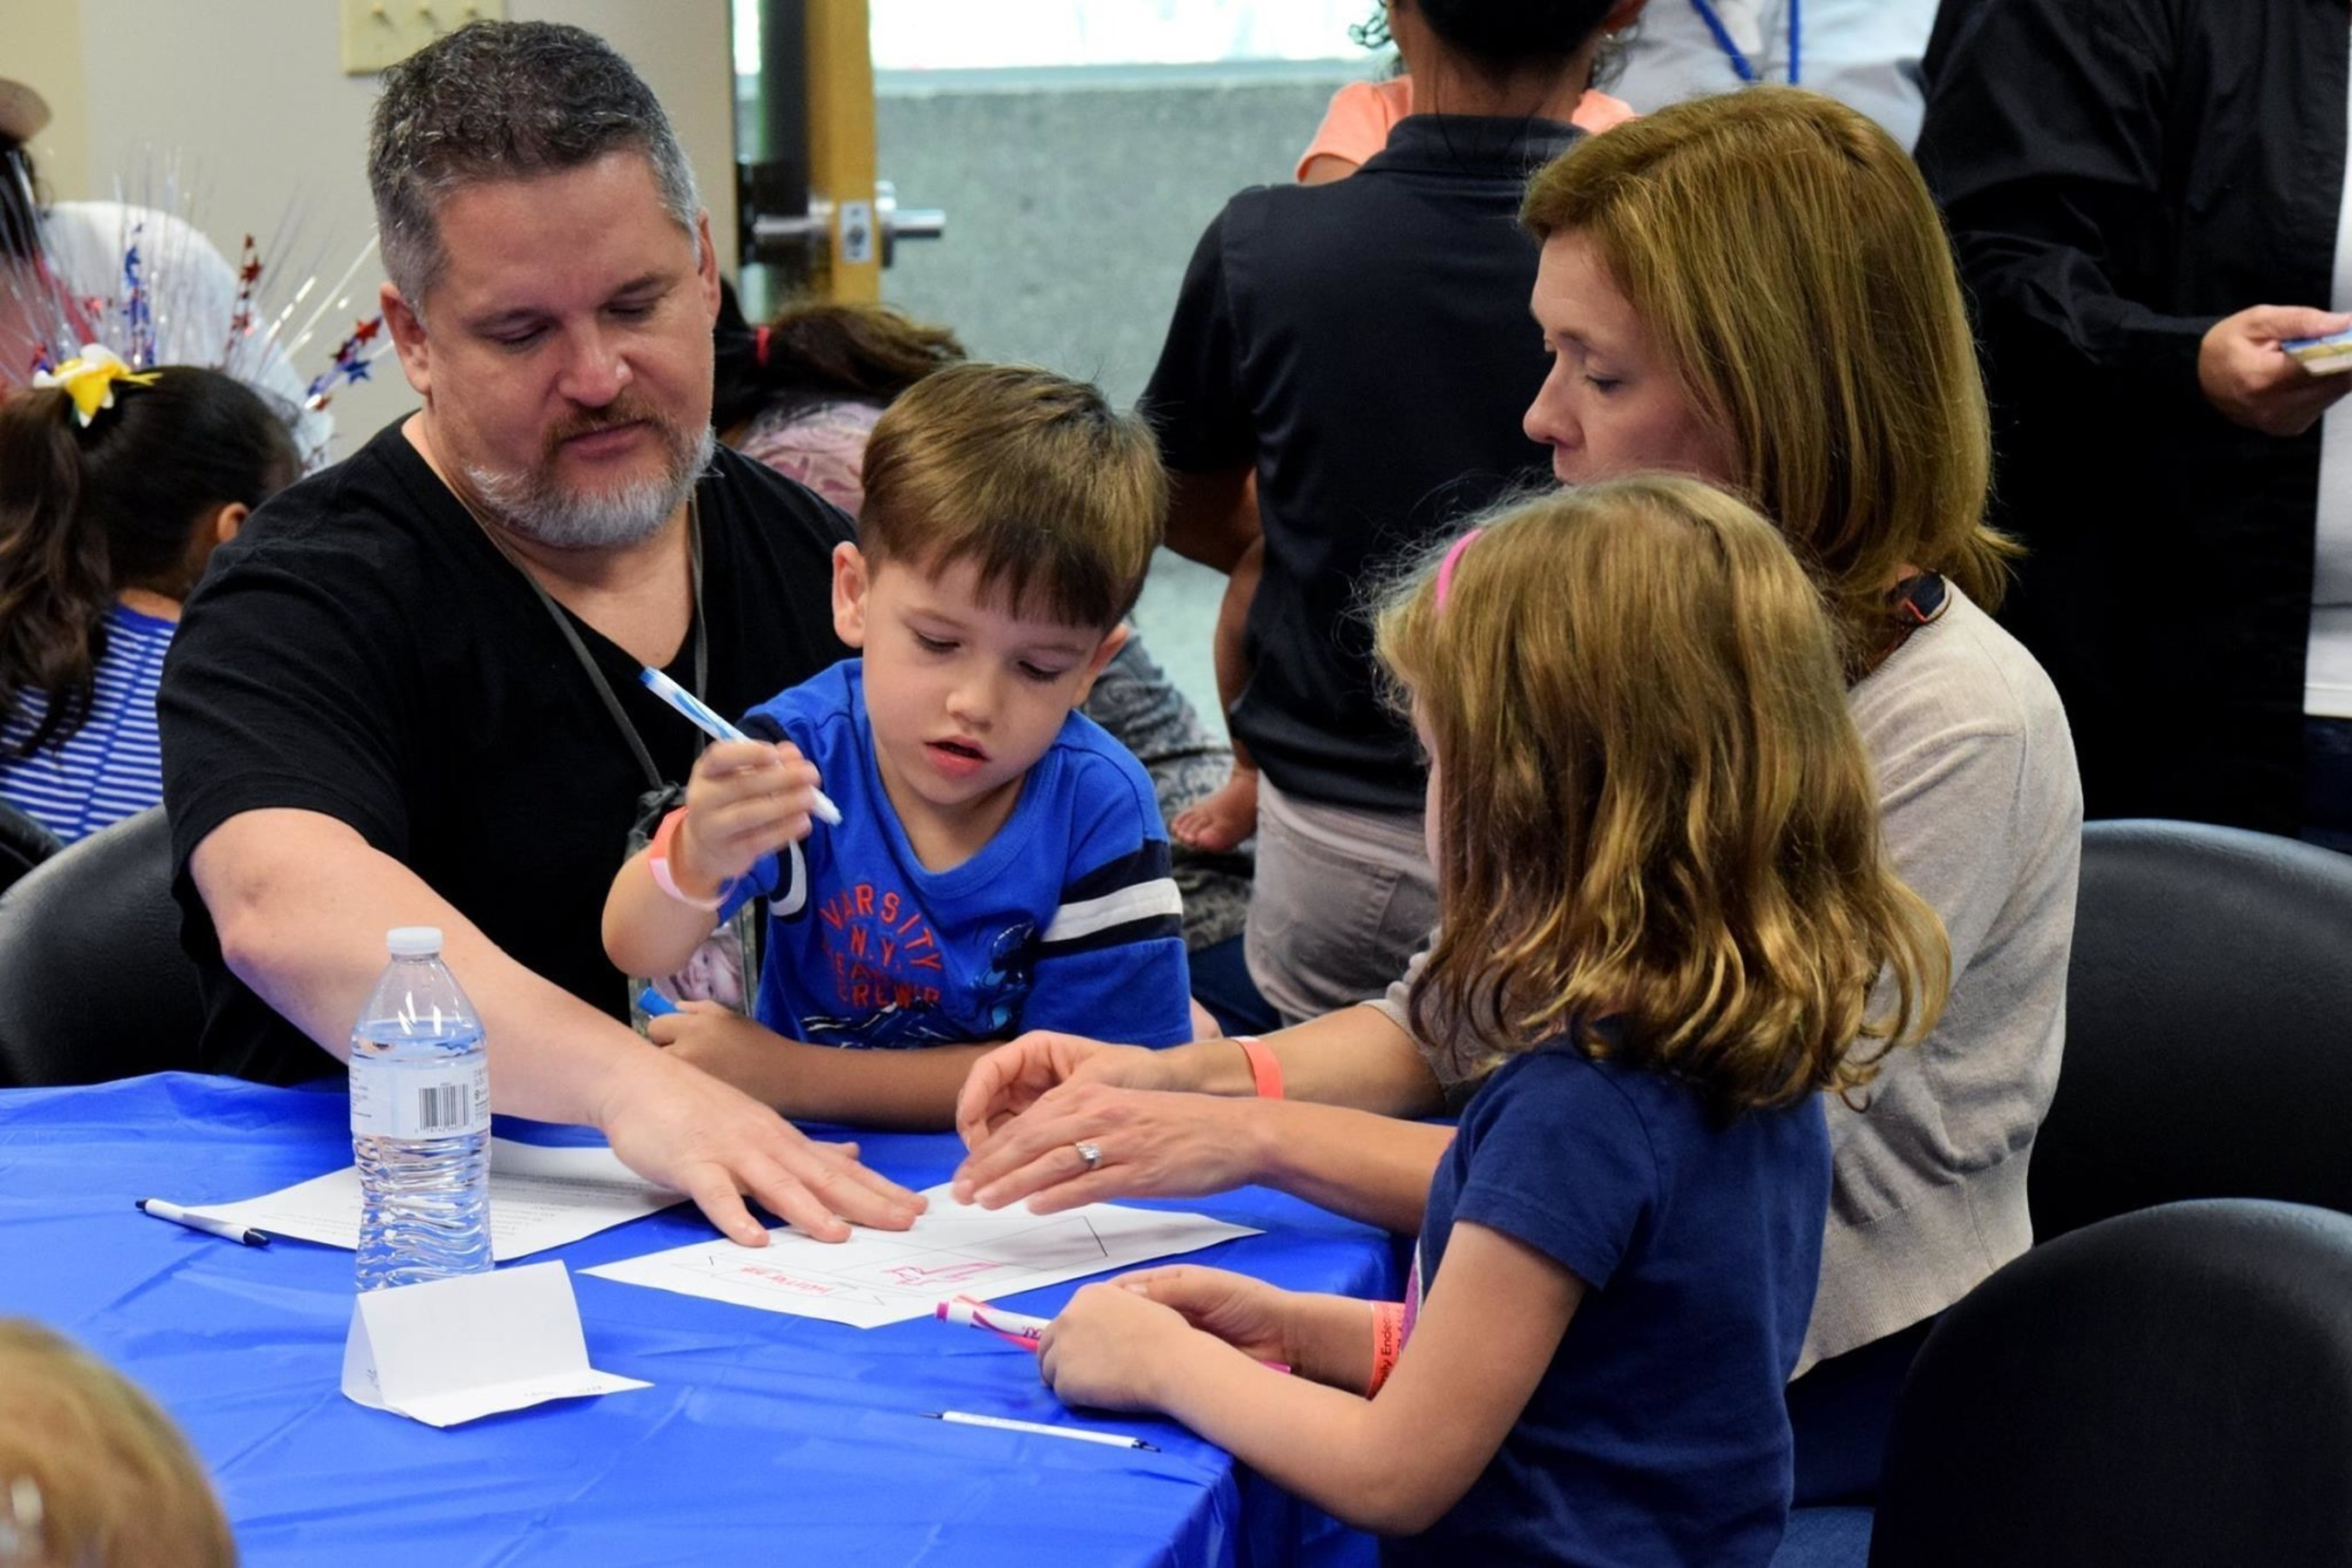 A veteran family designs their family crest during a Wounded Warrior Project event.